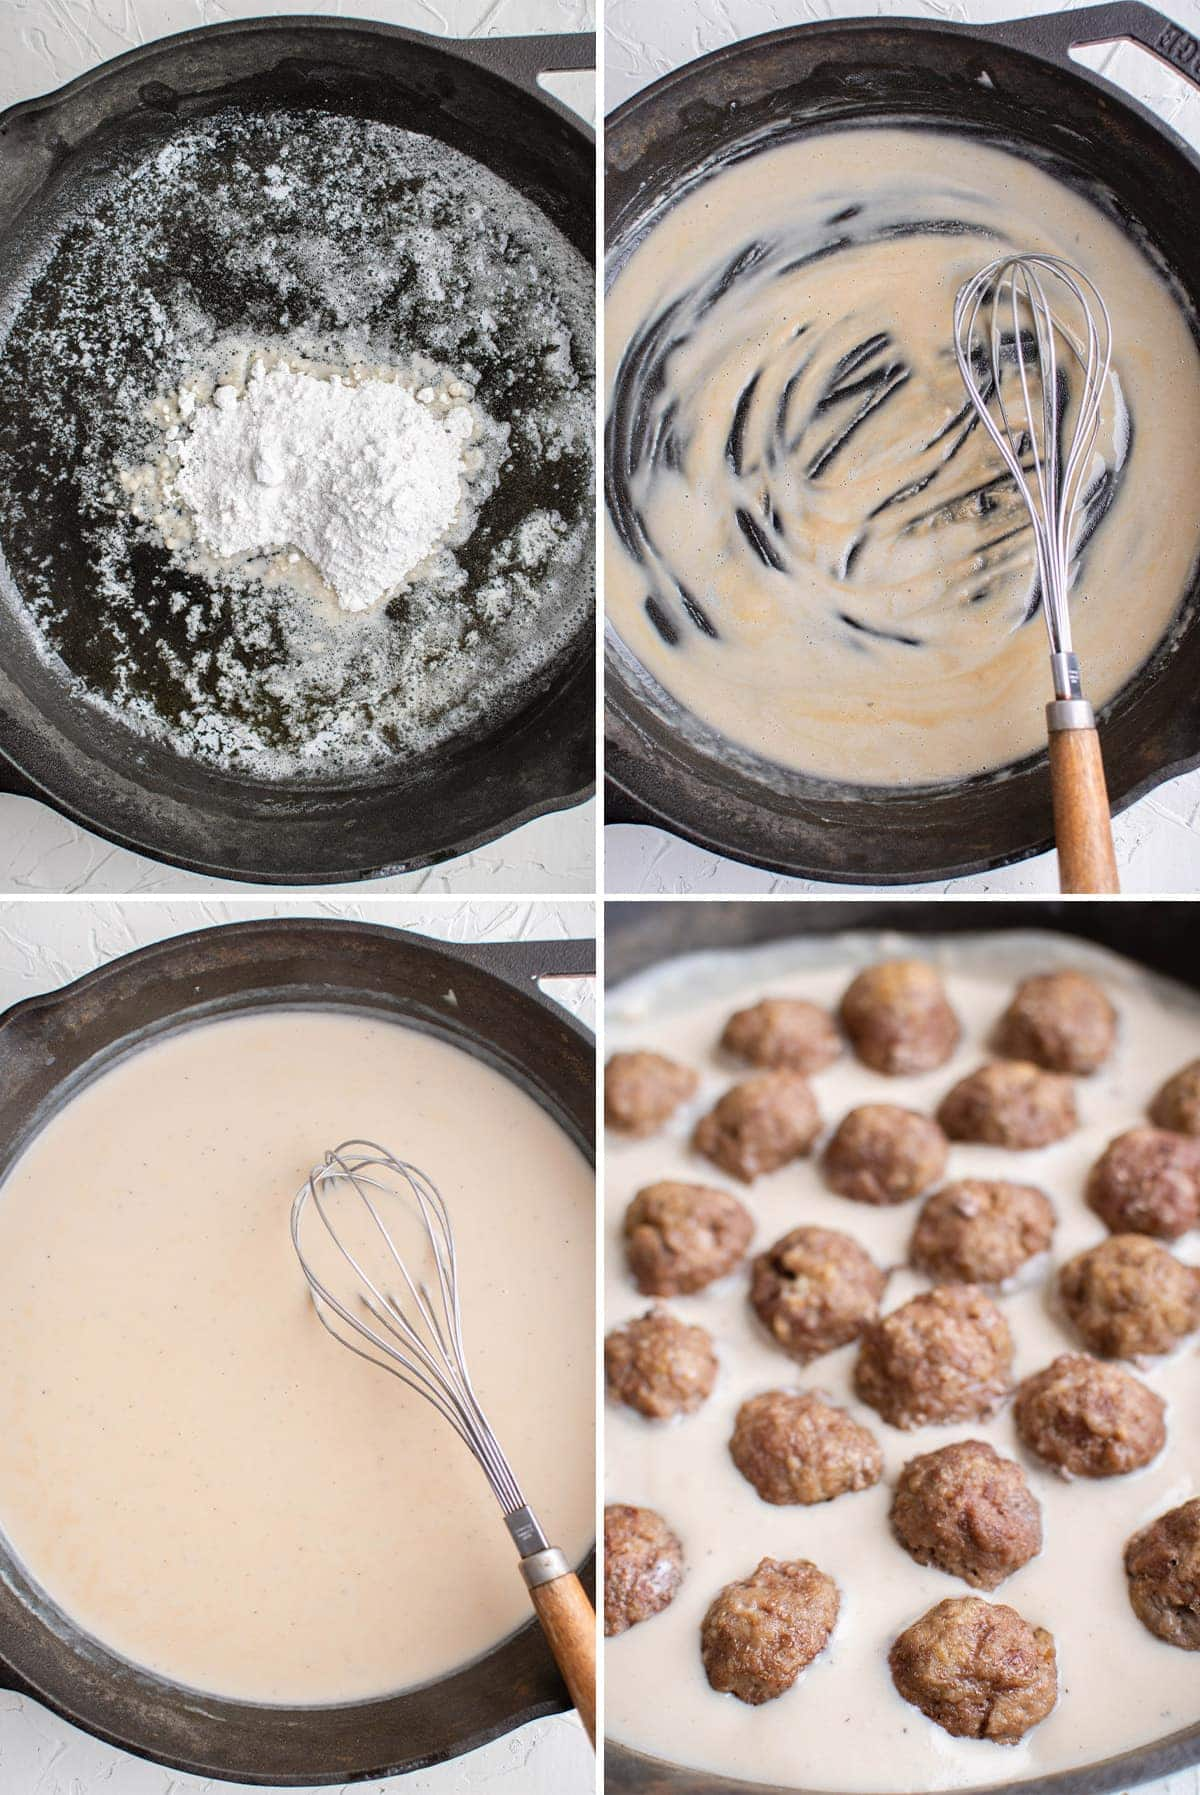 images showing the process of making gravy